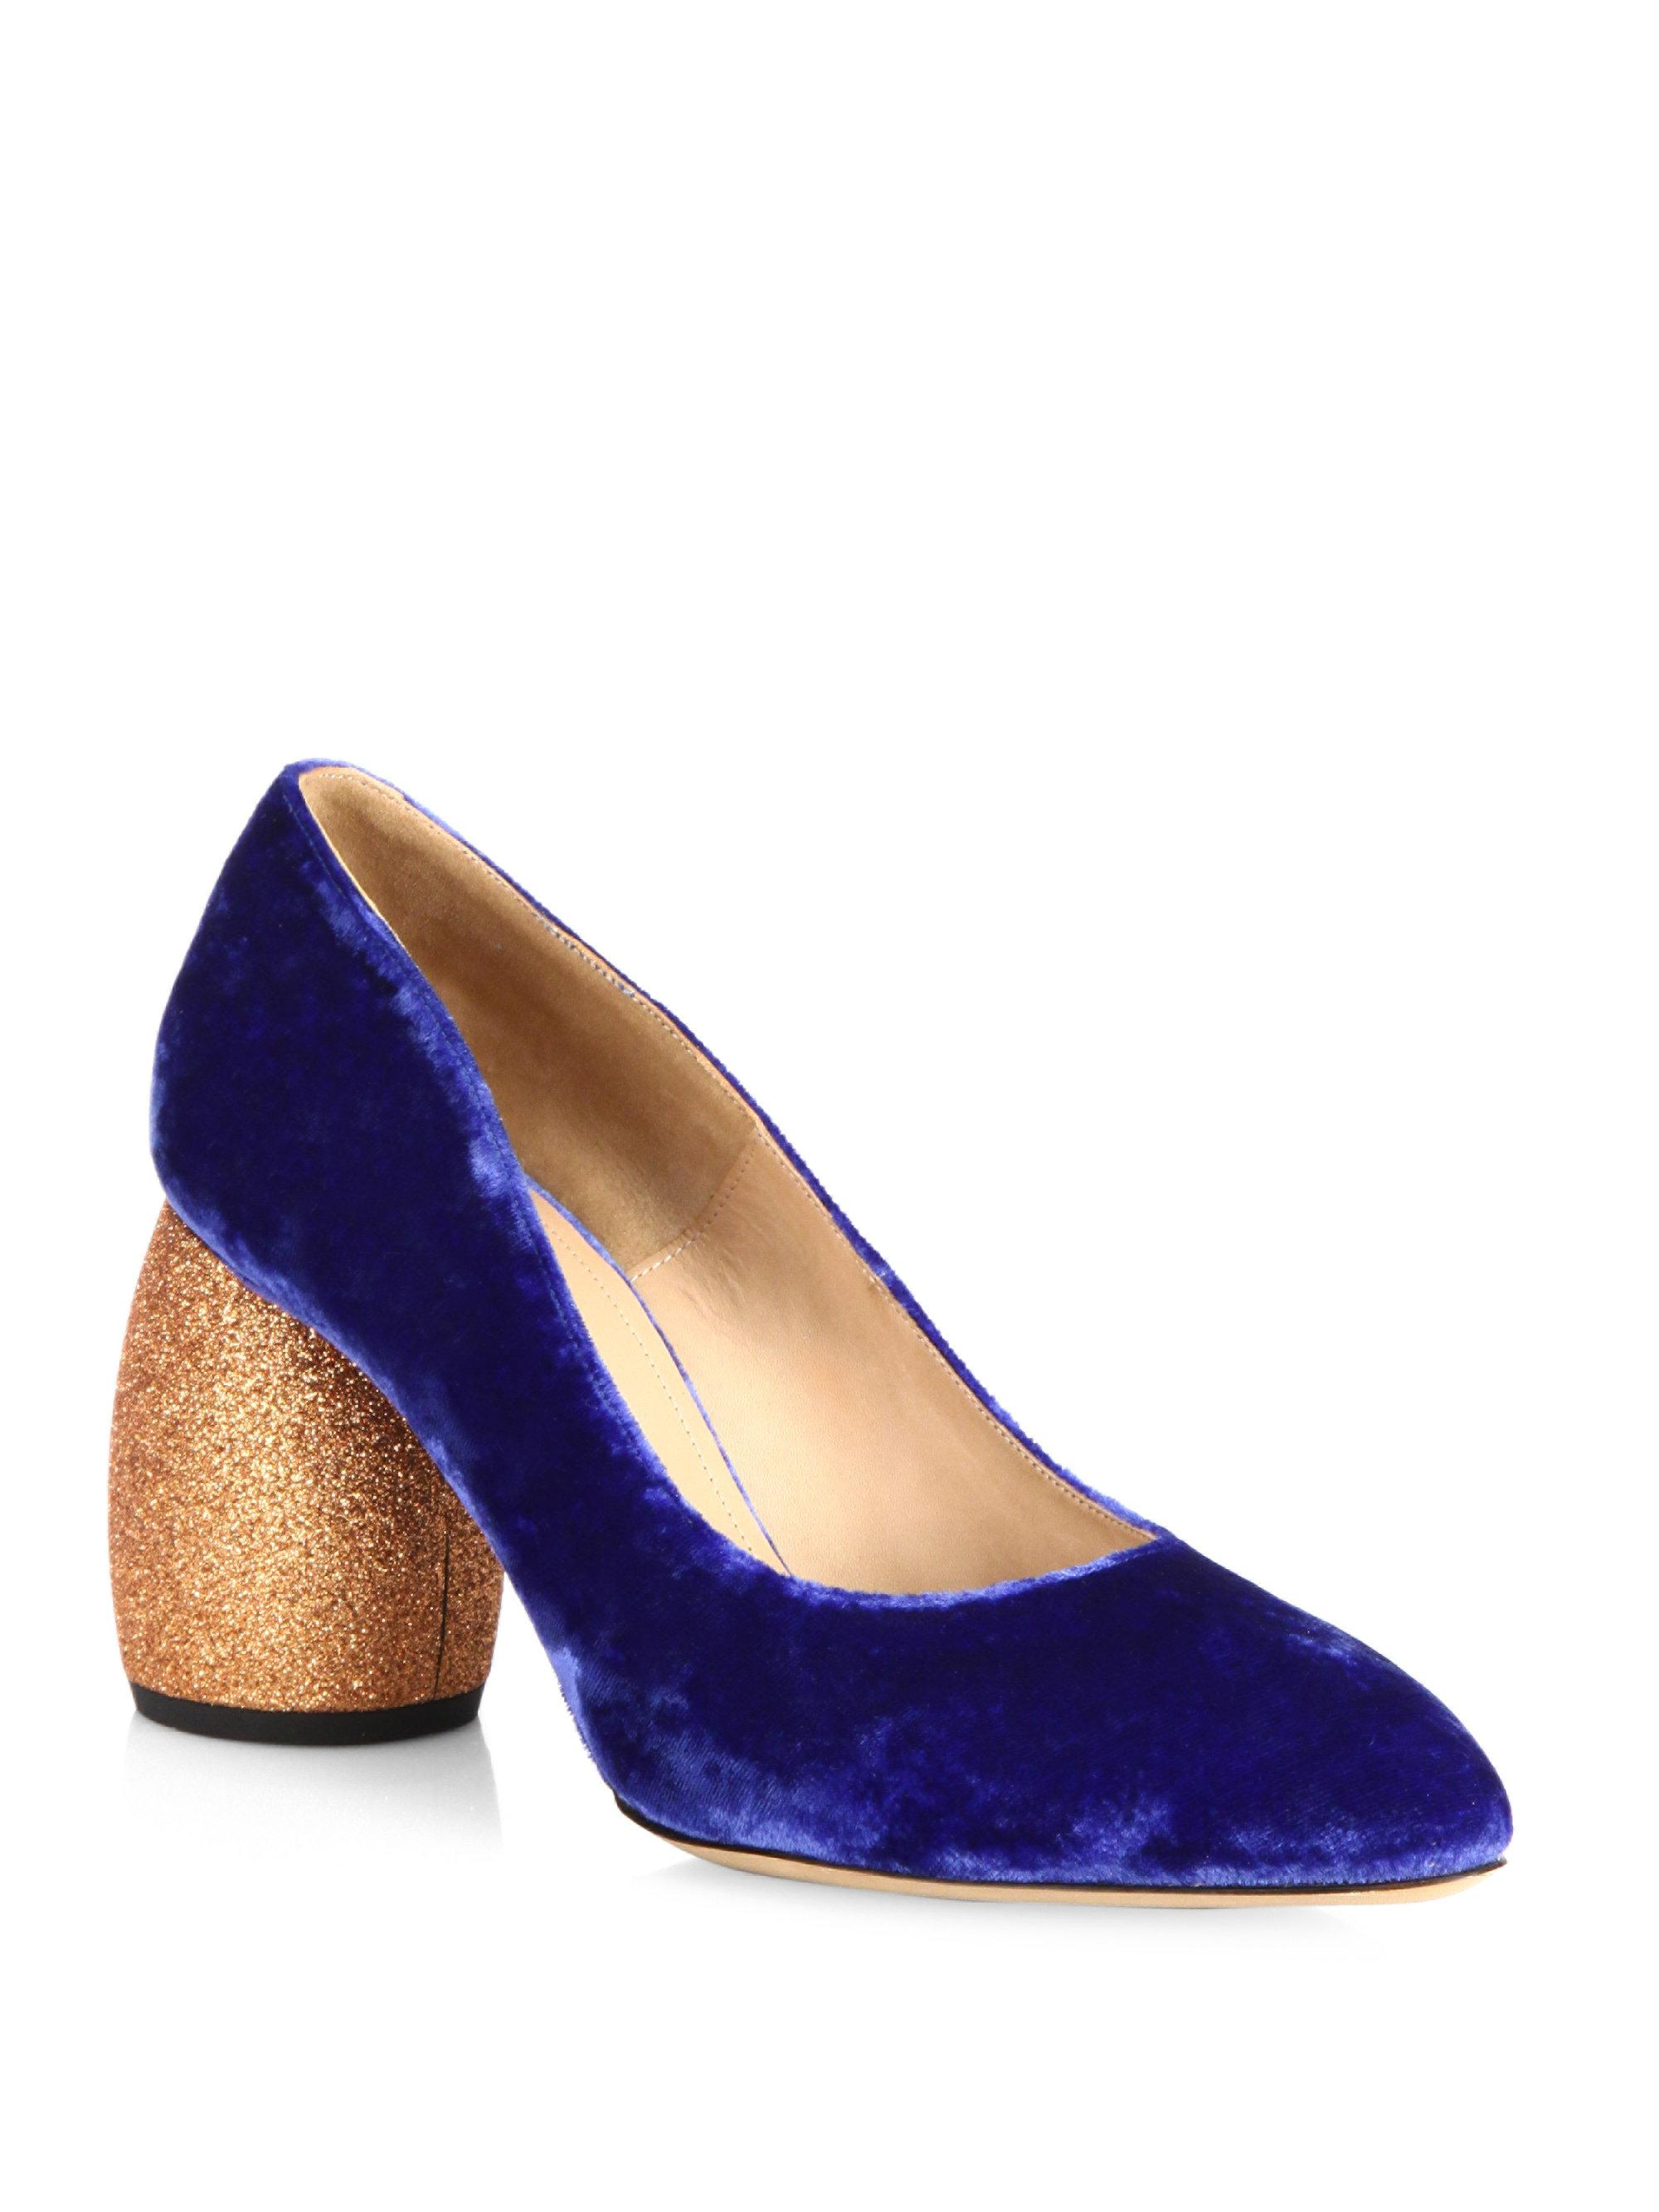 factory outlet cheap online ebay cheap price Dries Van Noten Velvet Pointed-Toe Pumps cheap best wholesale official for sale cheap sale from china oAb3s7FPkl